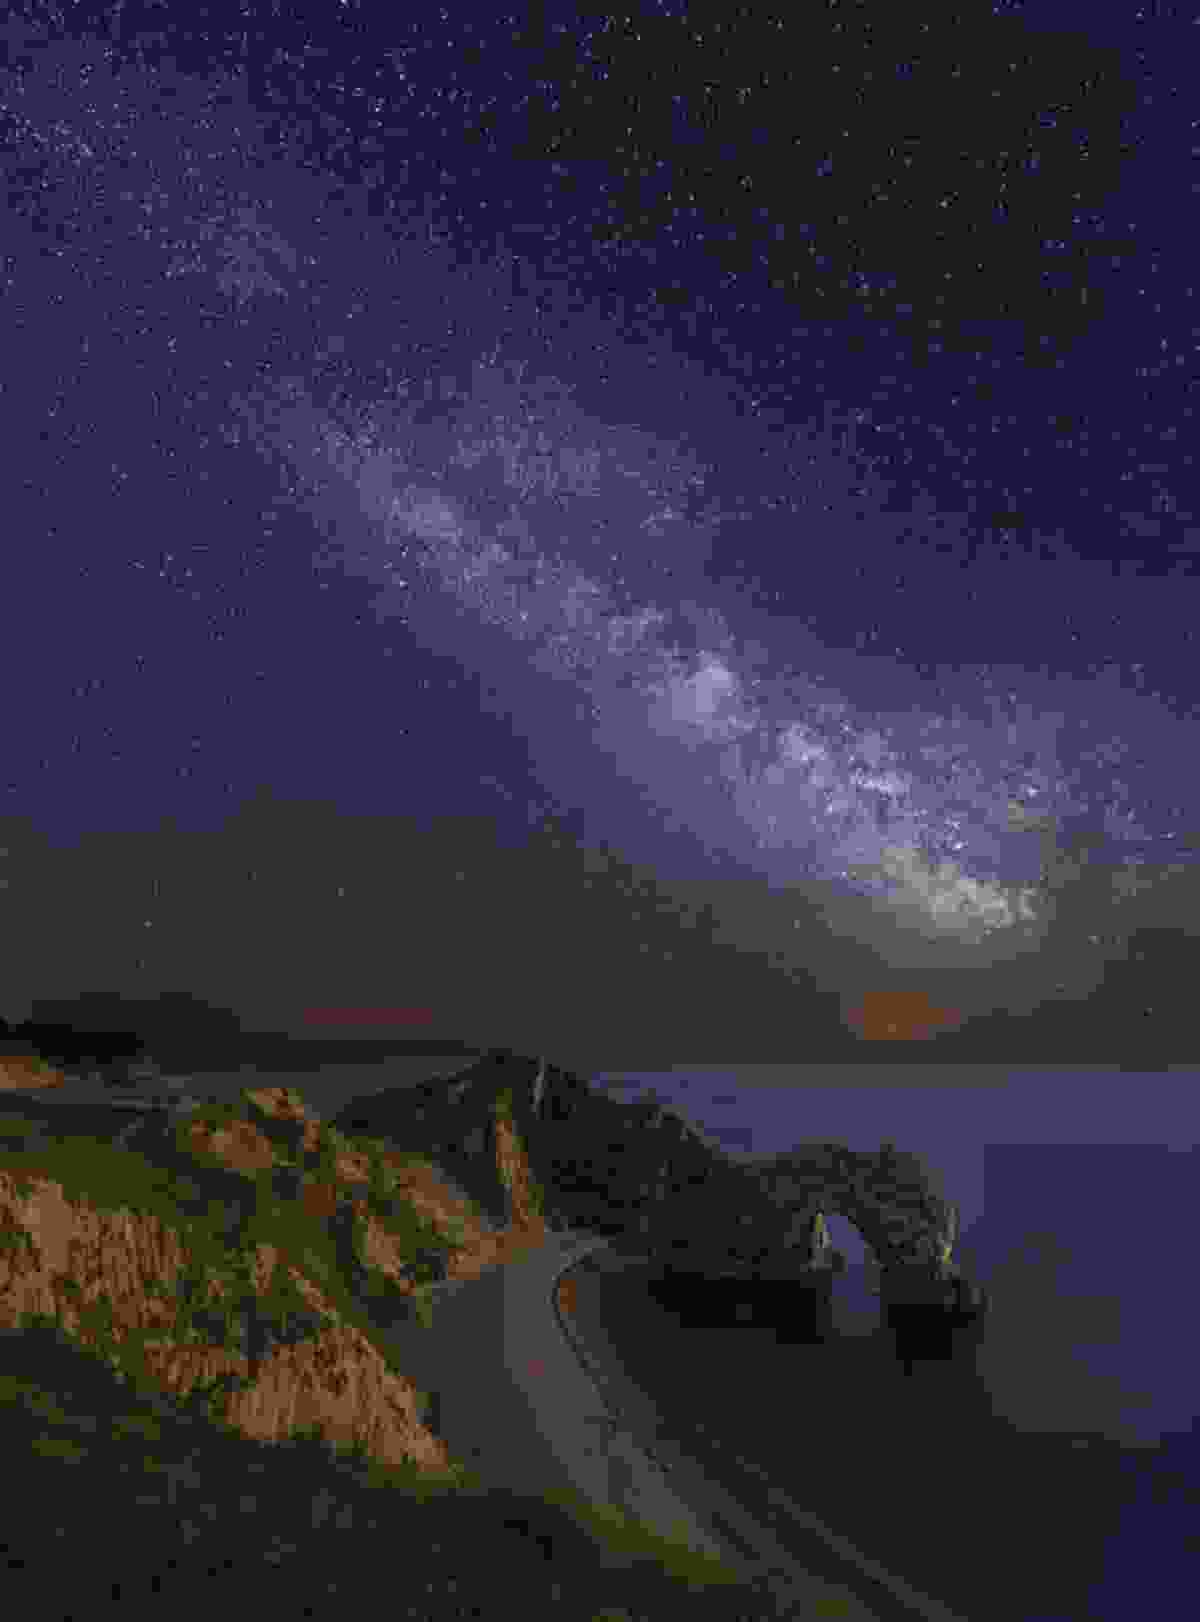 Find a suitable location with clear dark skies (Antony Zacharias)